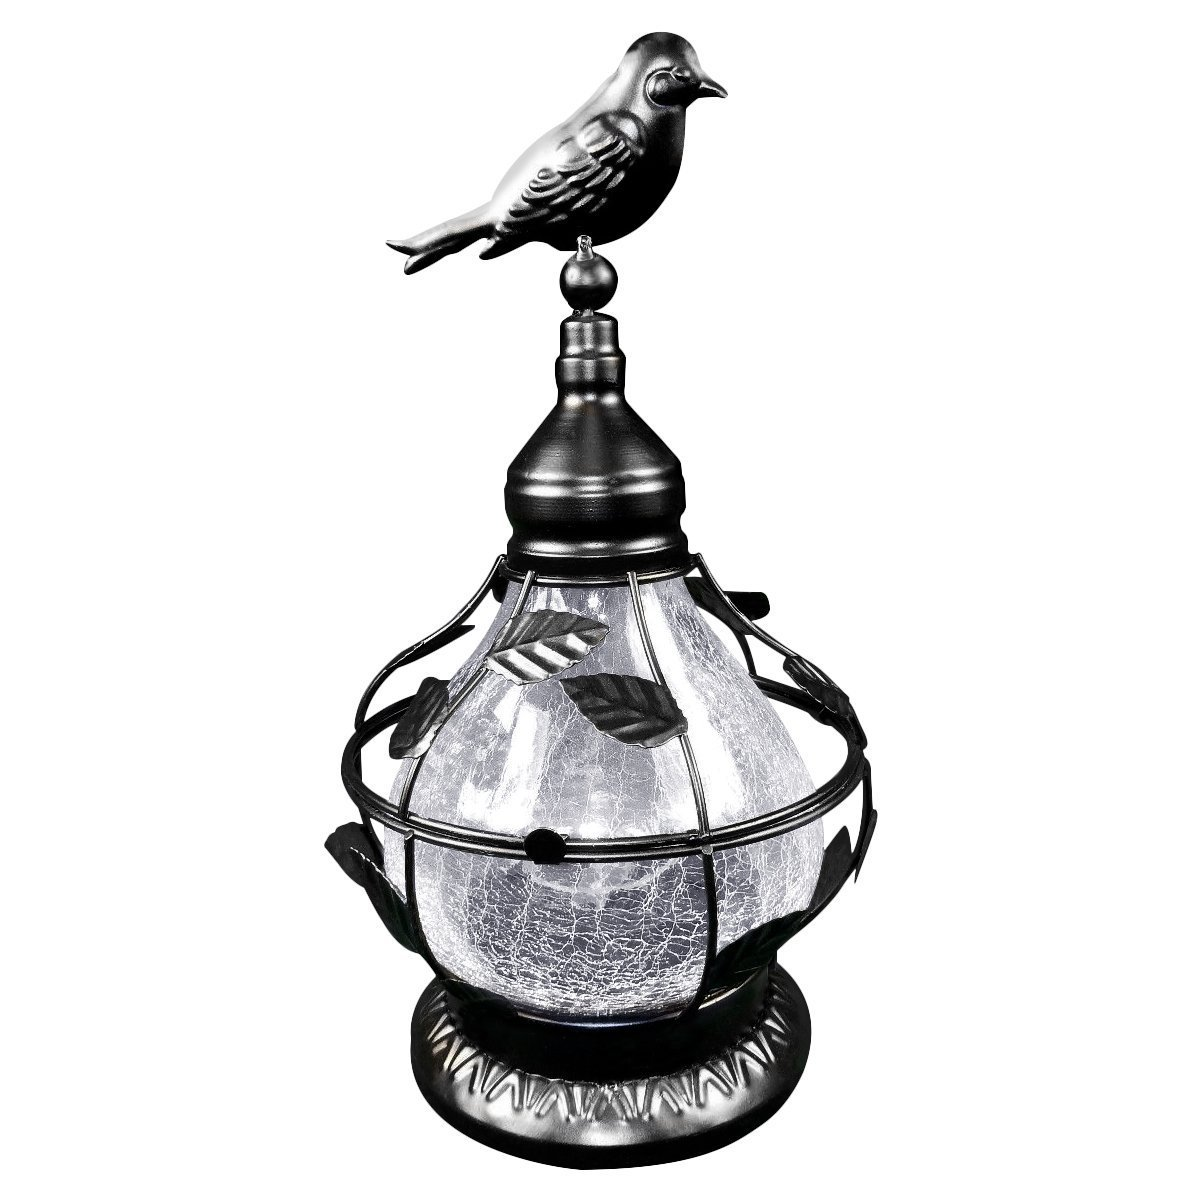 Solar Table Top Lamp, Bird Theme With Rotating Light, Crackled Glass - Black.